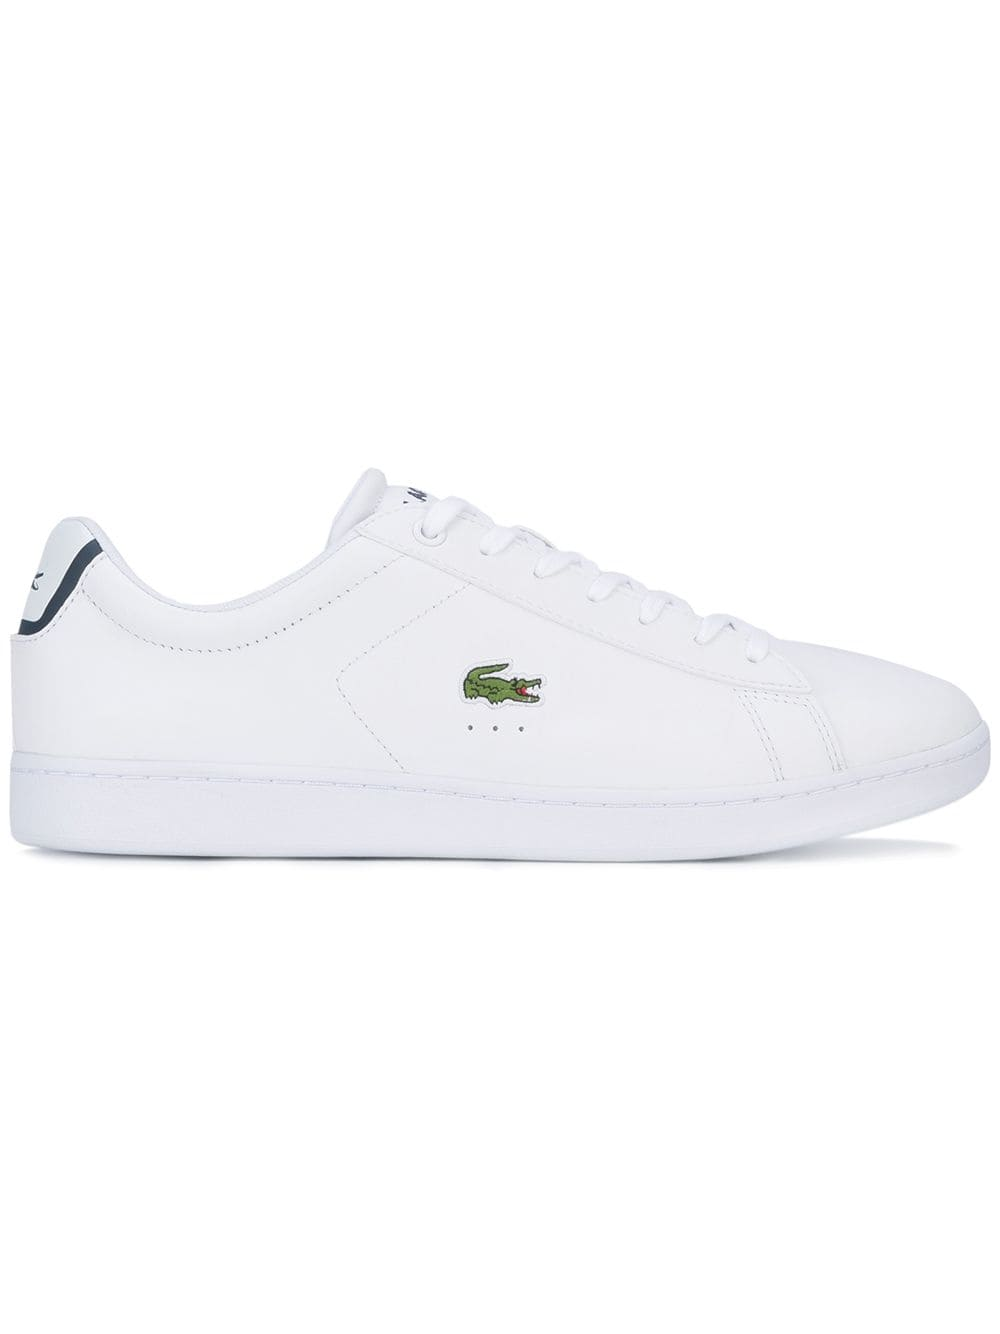 Lacoste shoes women, Leather sneakers